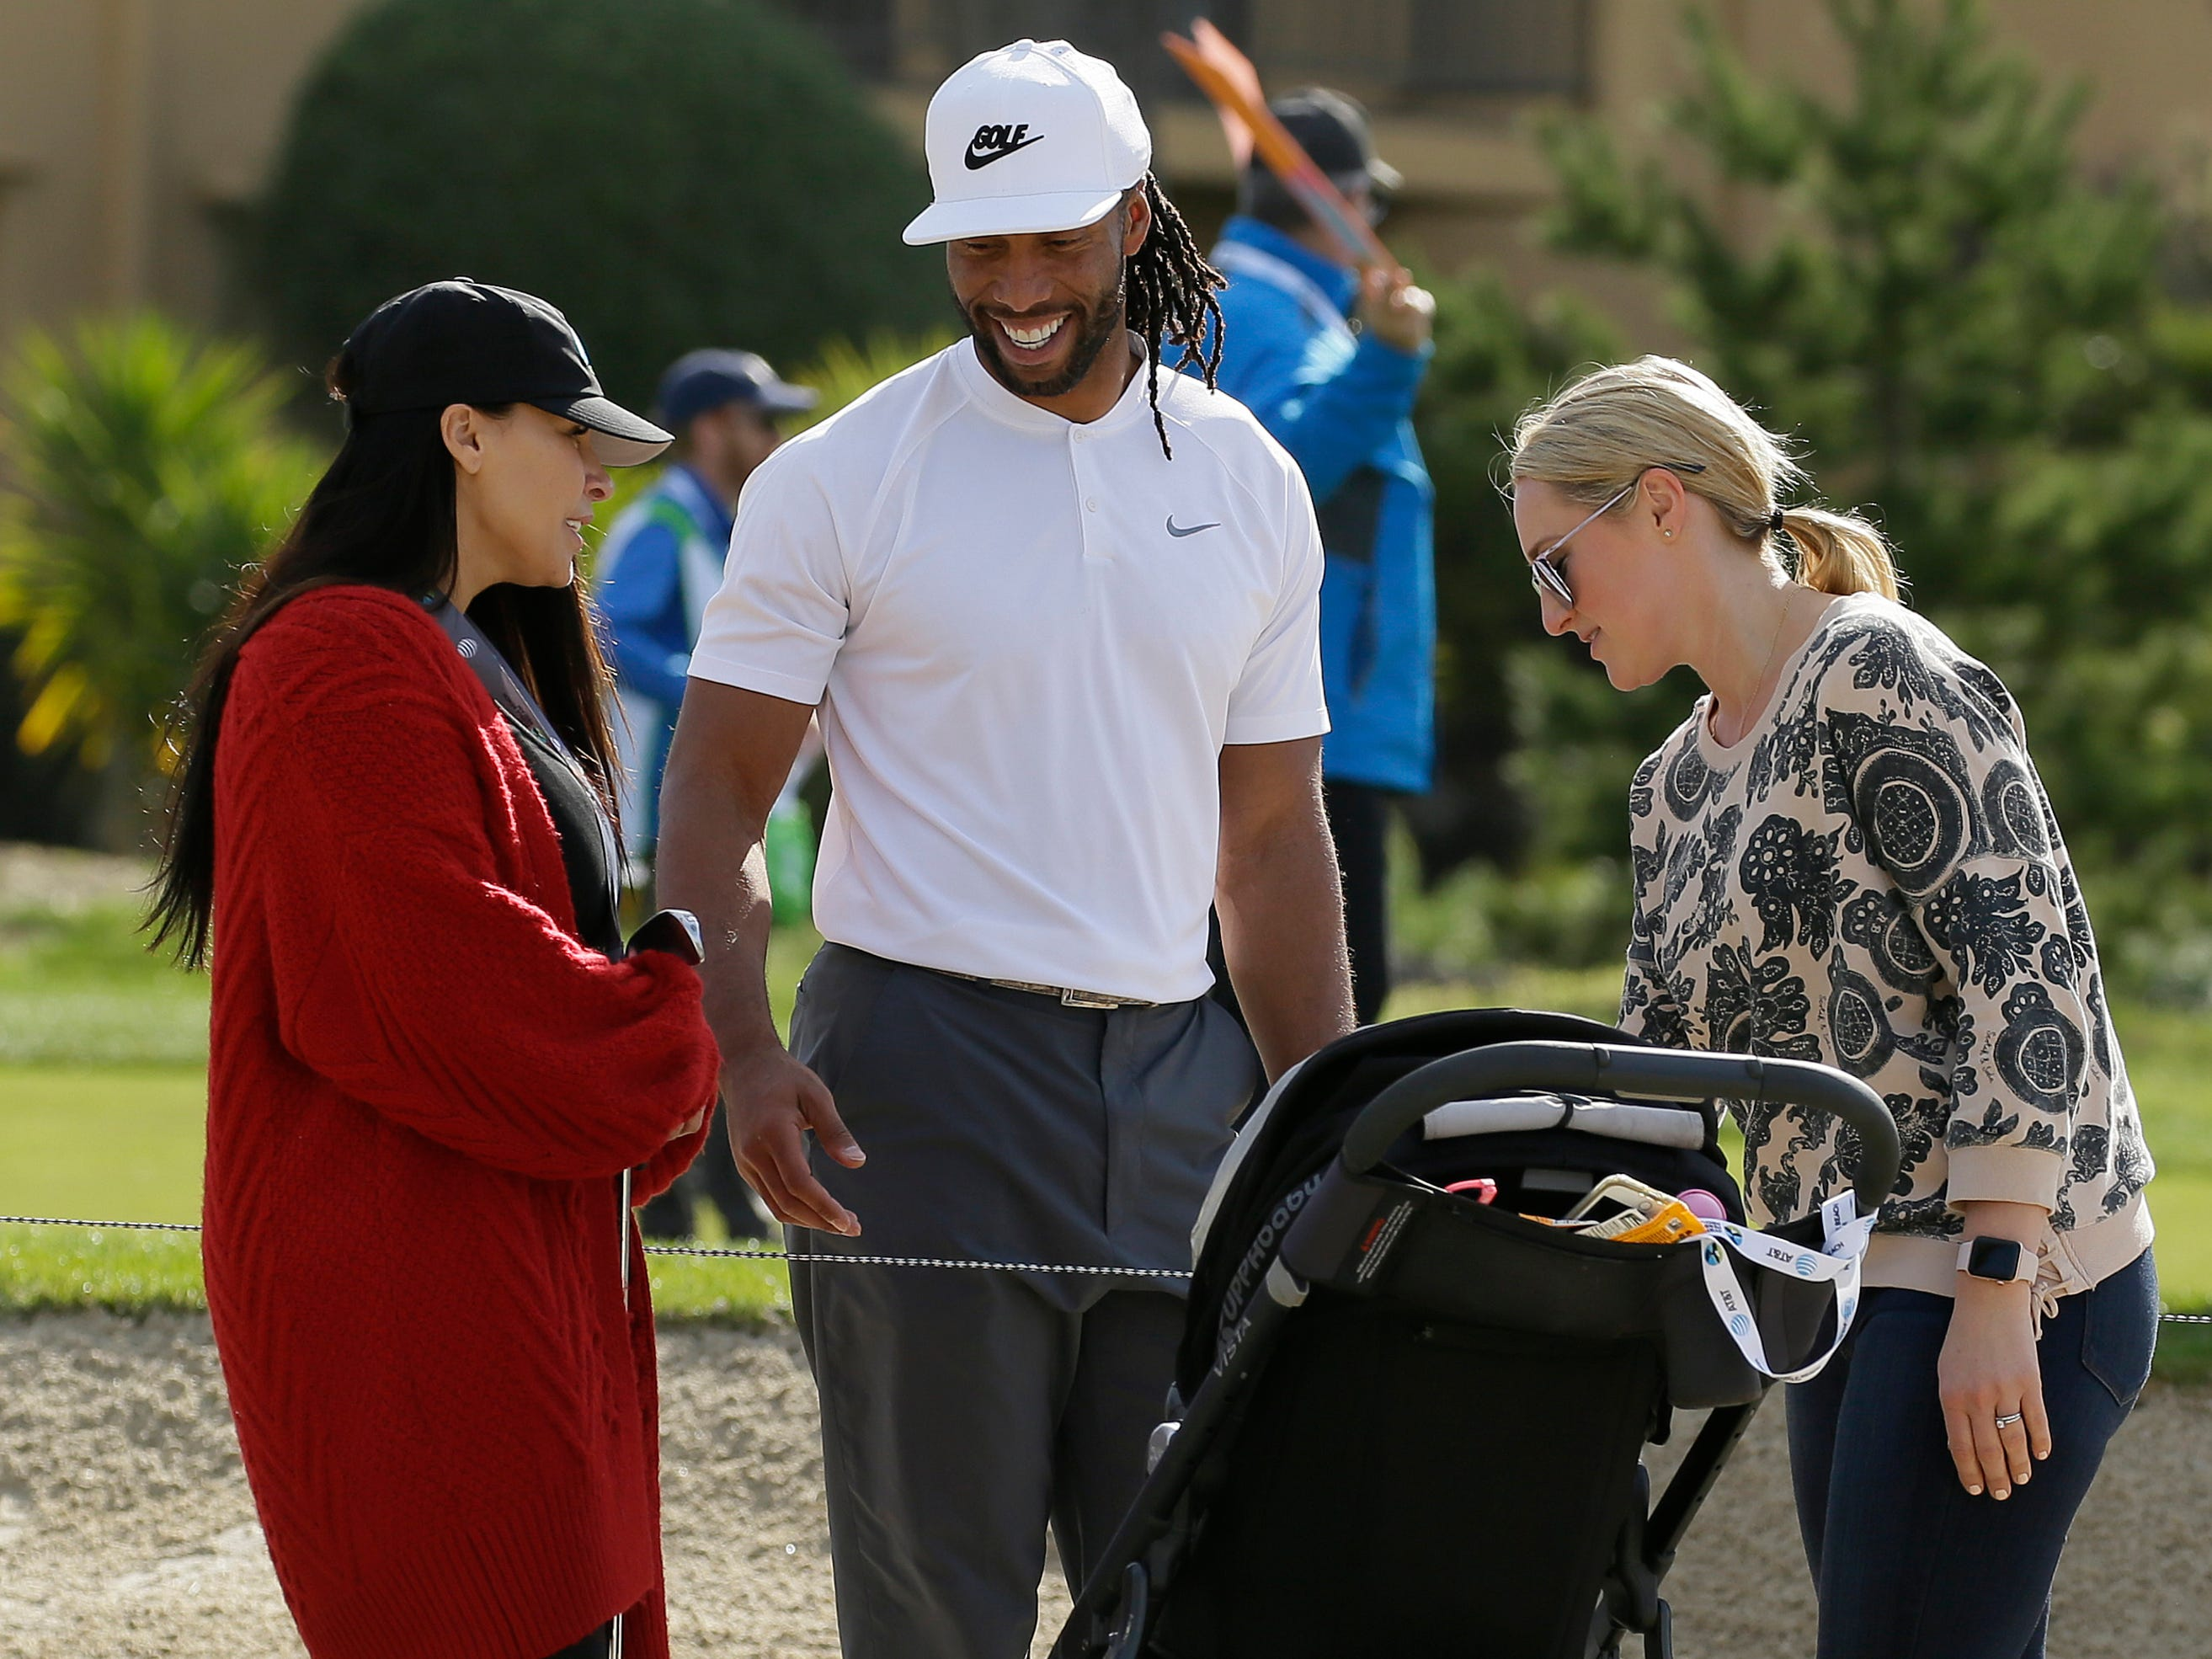 Cardinals WR Larry Fitzgerald Jr. stops to visit fans on the fourth hole of the Monterey Peninsula Country Club Shore Course during the first round of the AT&T Pebble Beach National Pro-Am.